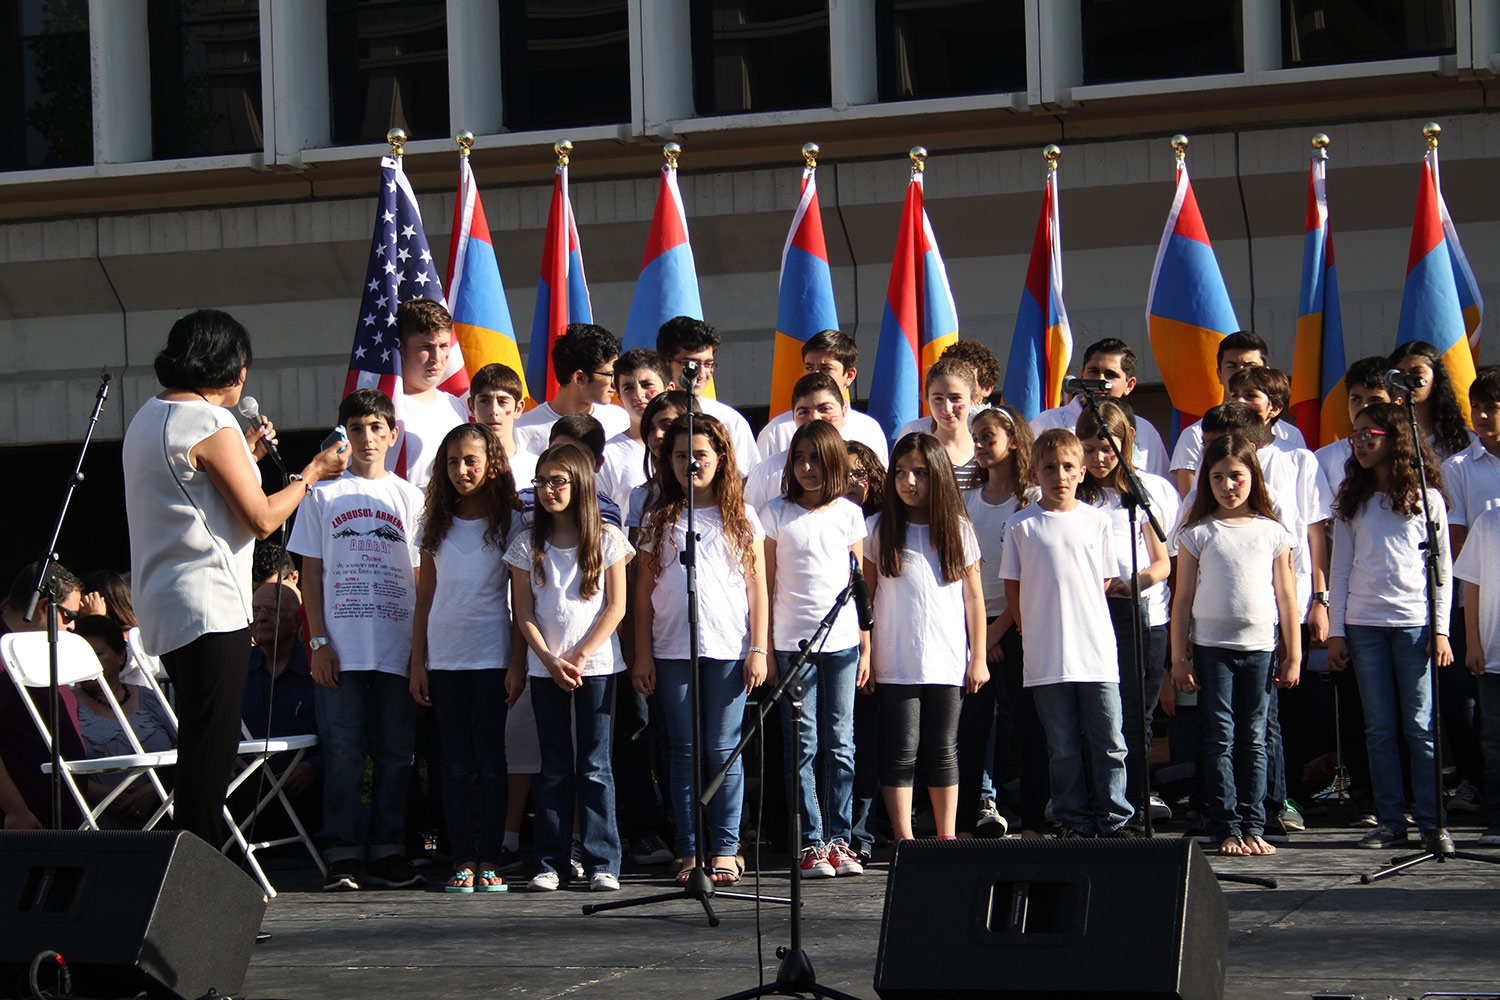 Young Armenians Make a Pledge of Service - Armenian Youth